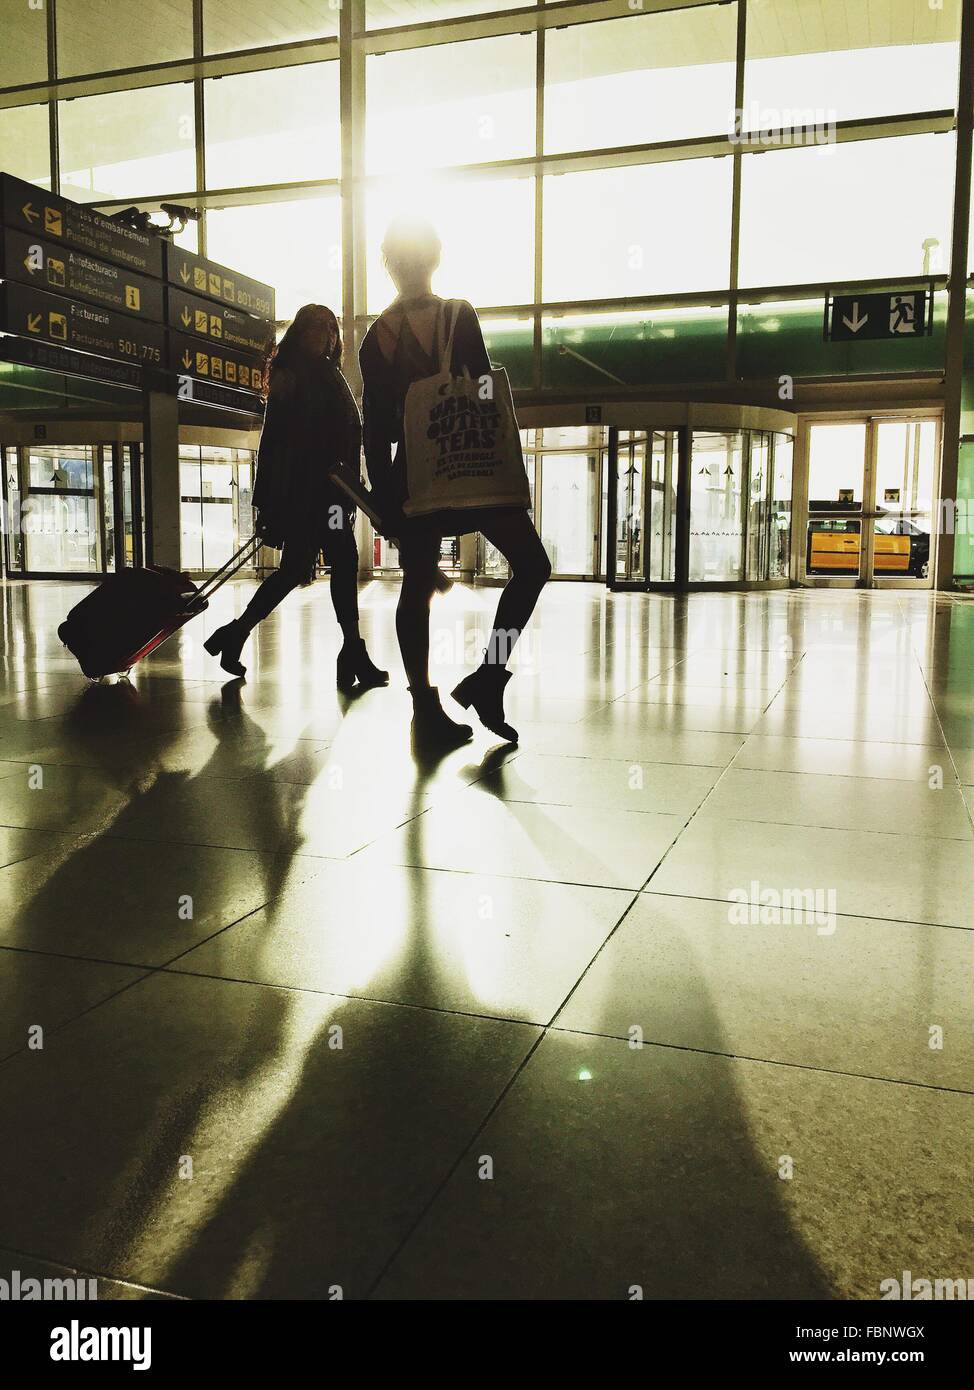 Shadow Of Women On Floor At Airport - Stock Image